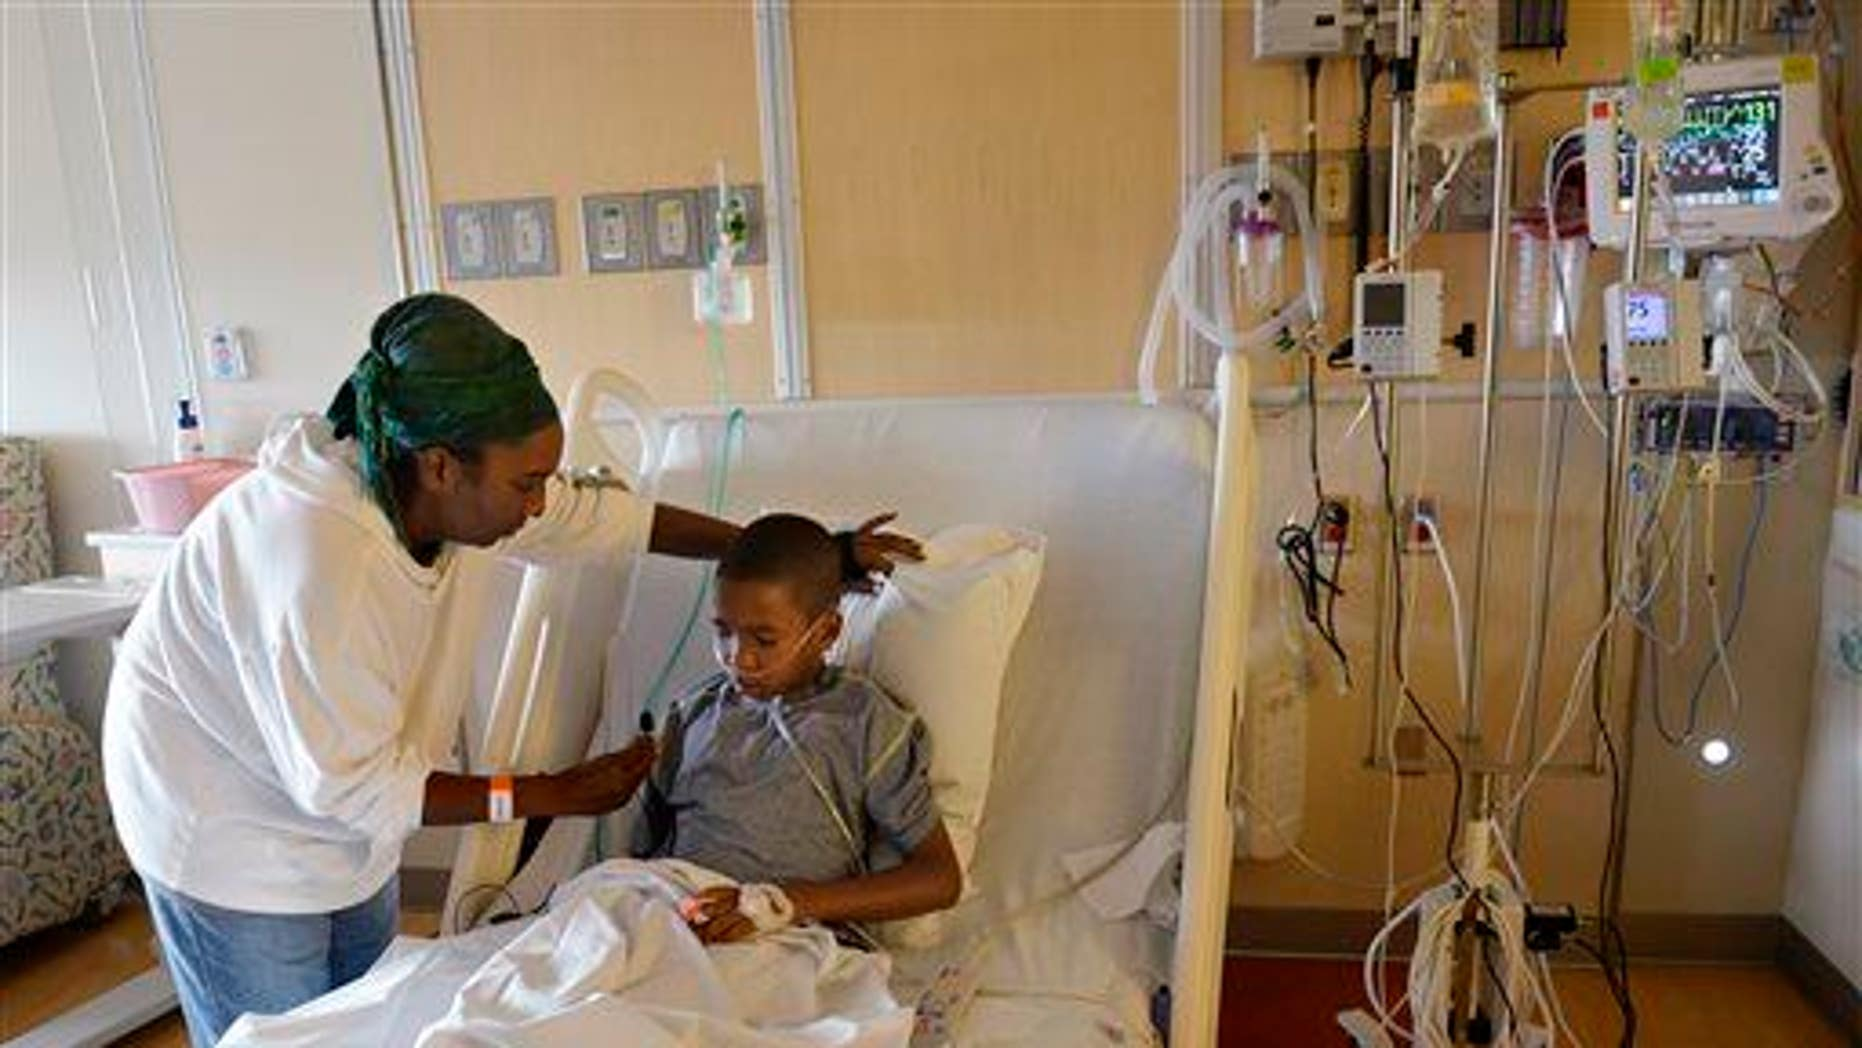 In this Sept. 8, 2014, photo, Melissa Lewis of Denver helps her son, Jayden Broadway, 9, as he coughs in his bed at the Children's Hospital Colorado in Aurora, Colo. He was treated for enterovirus-68.